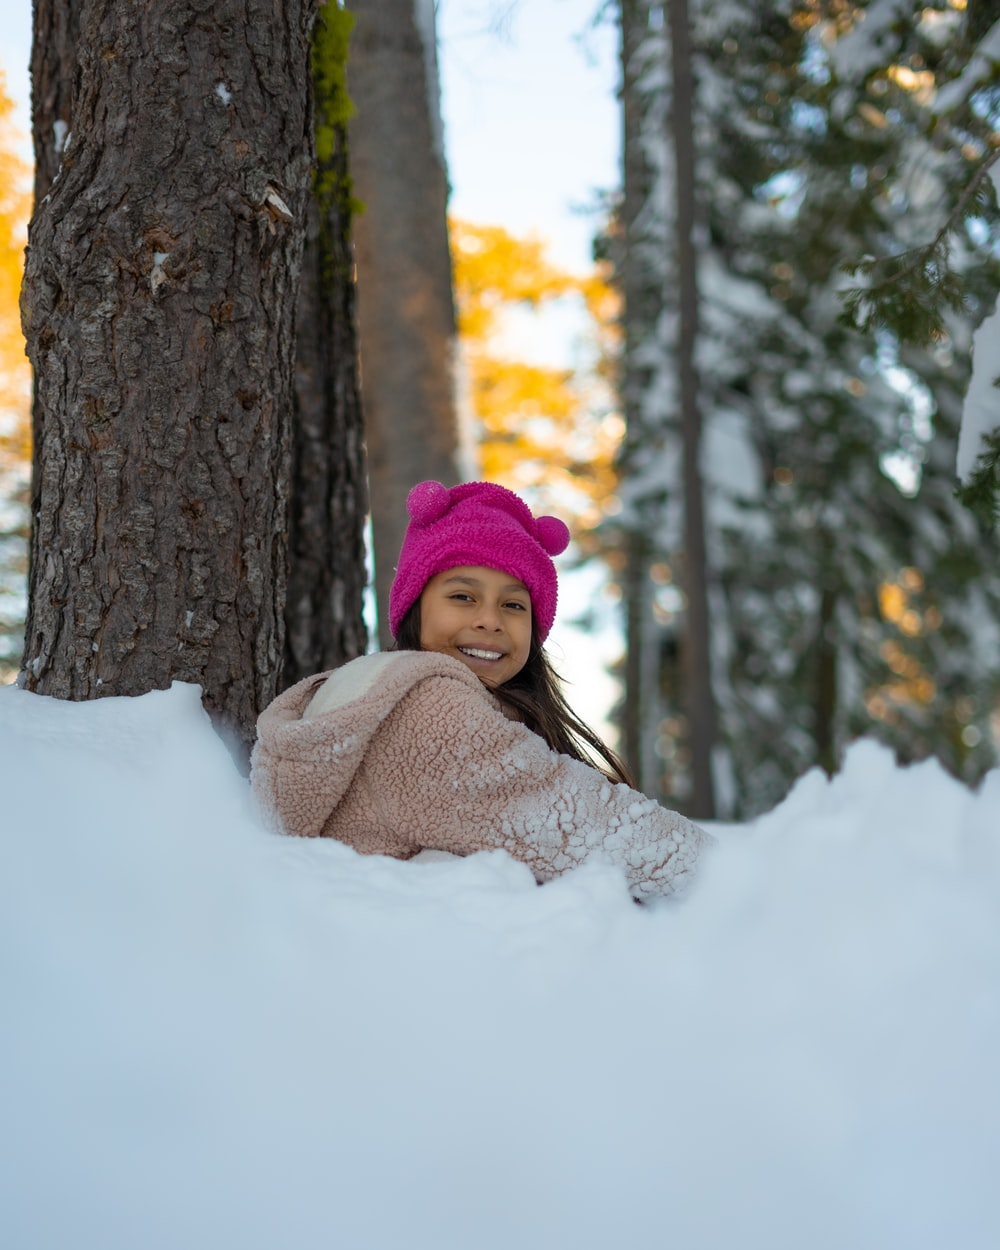 woman in pink knit cap and white knit scarf sitting on snow covered ground near brown